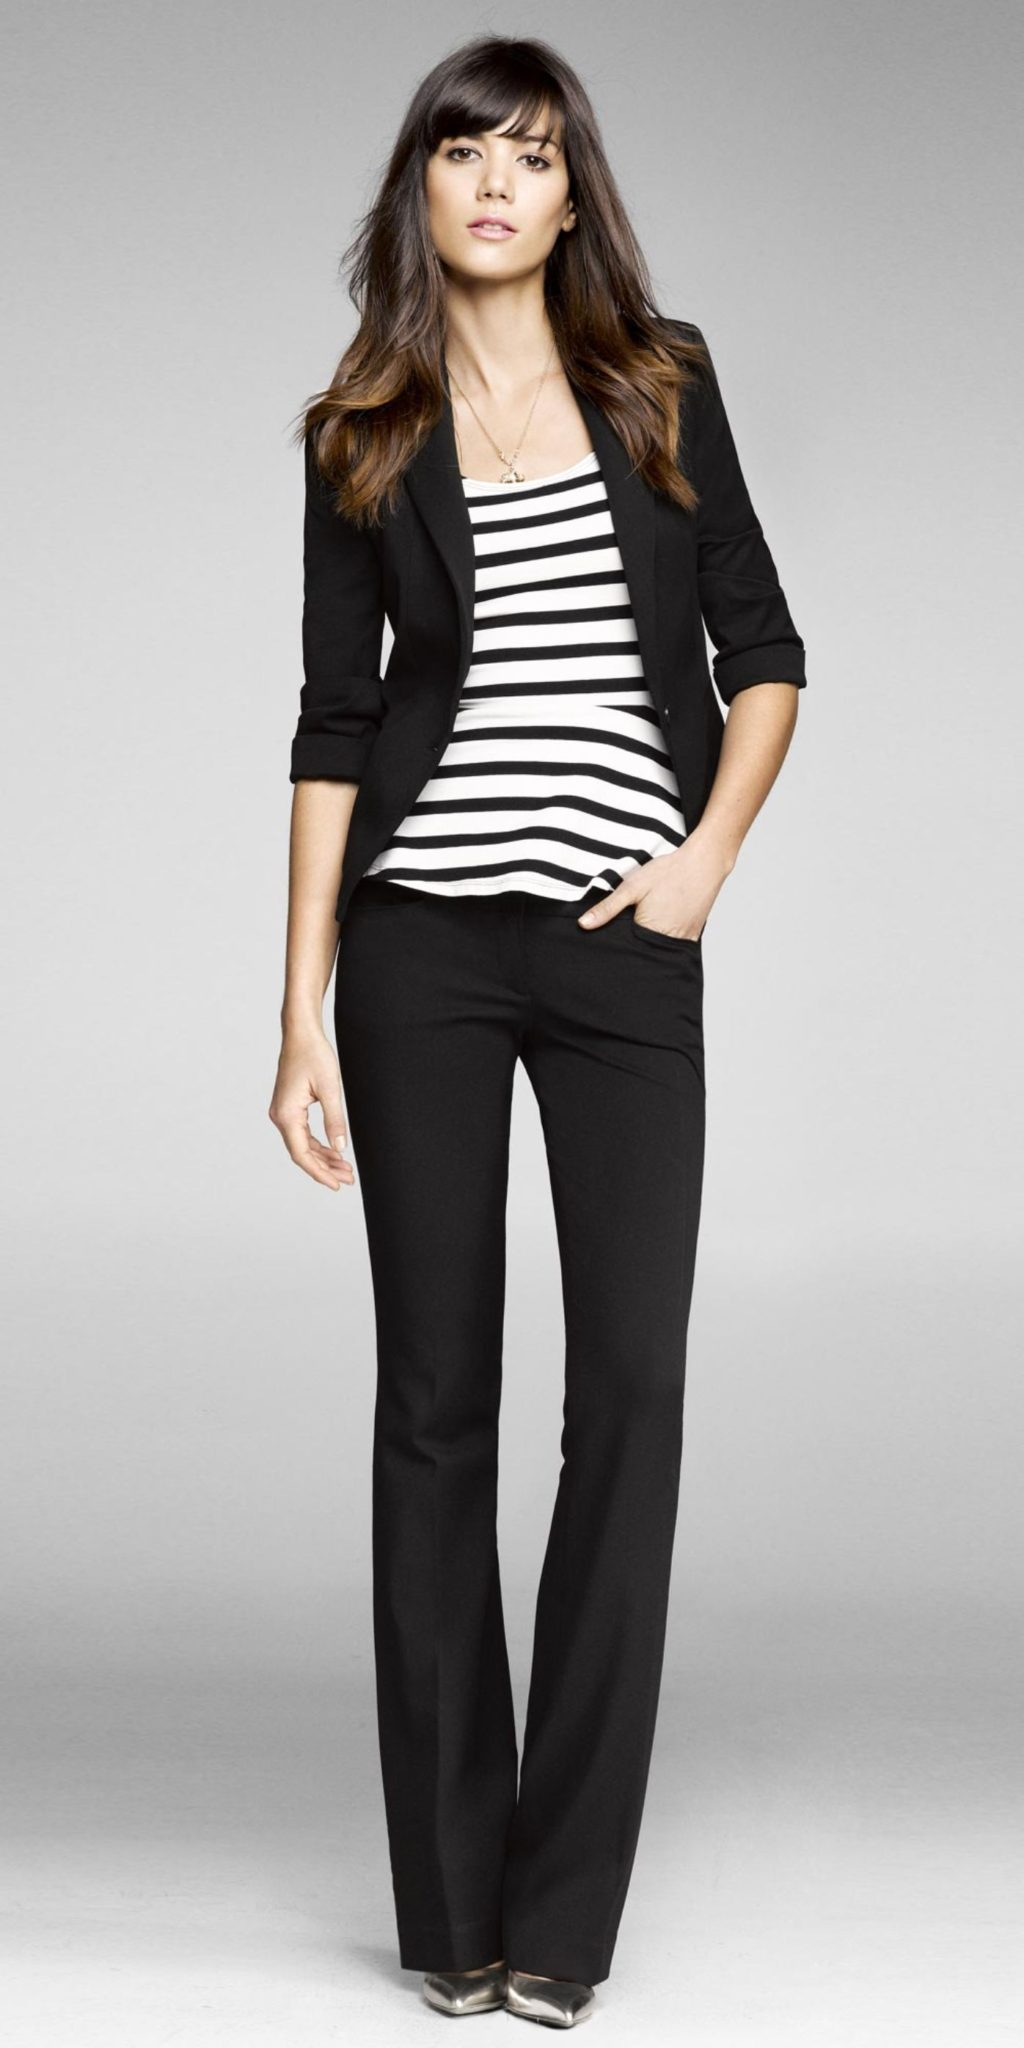 casual-suit.-1024x2048 +45 Stylish Women's Outfits for Job Interviews for 2021